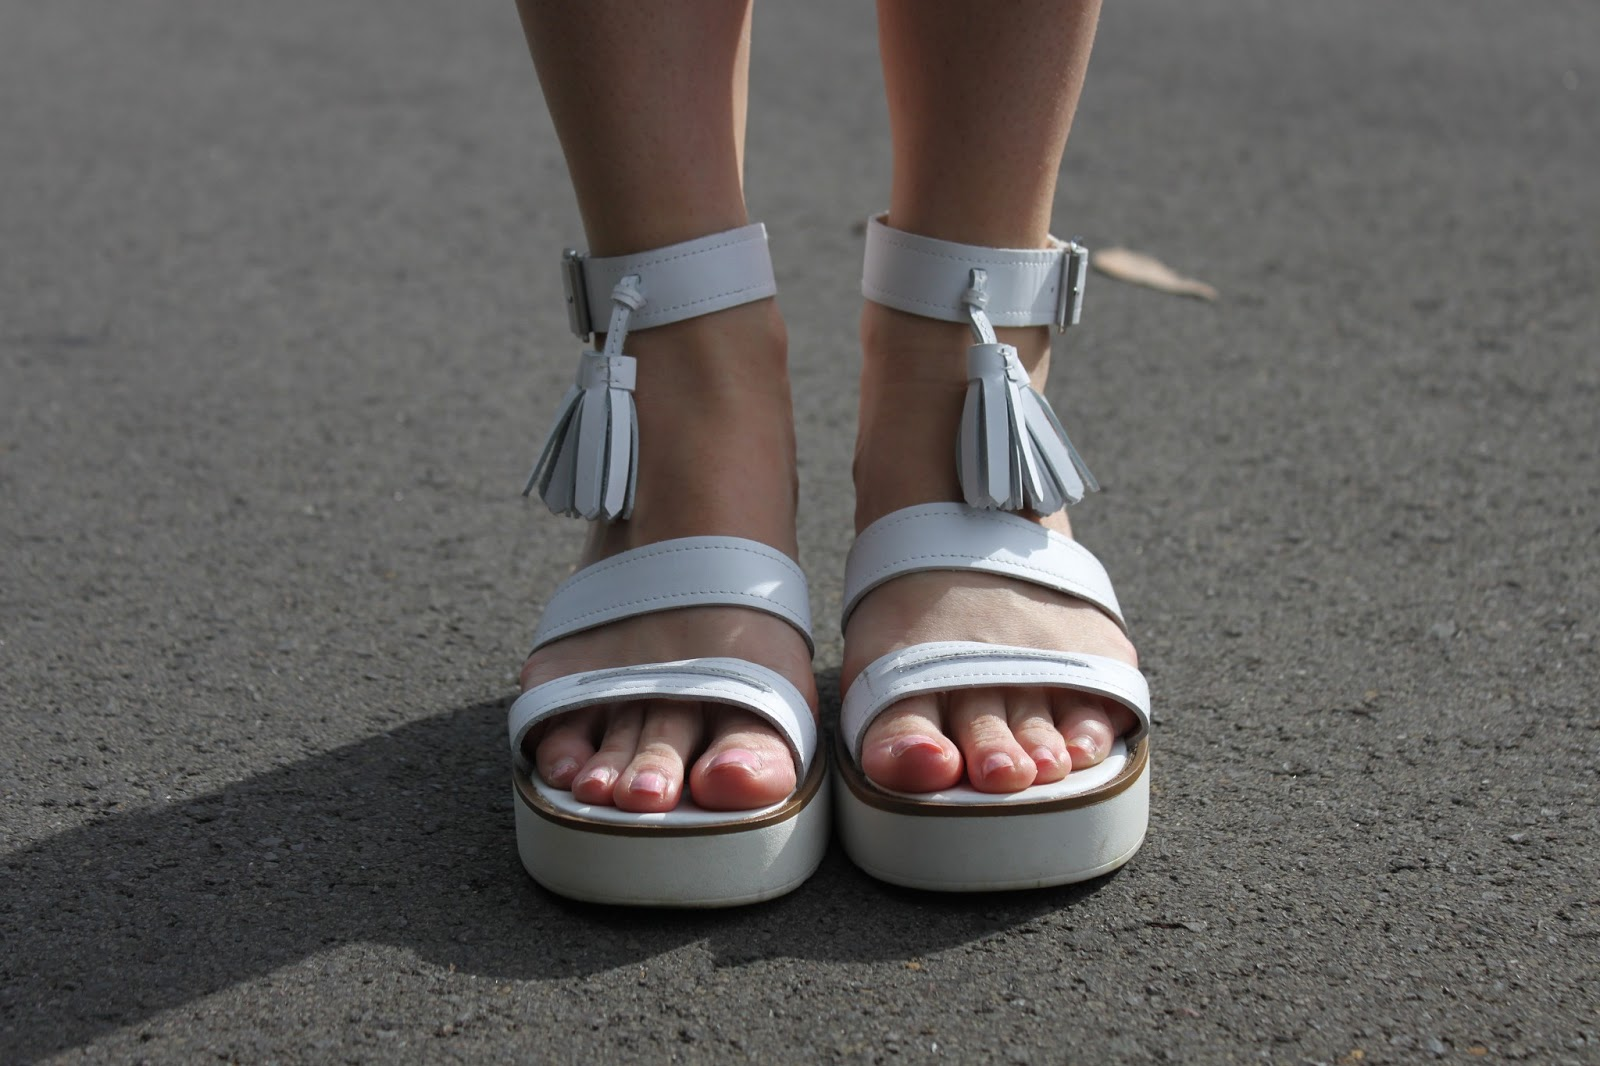 How to windsor wear smith lily shoes new photo